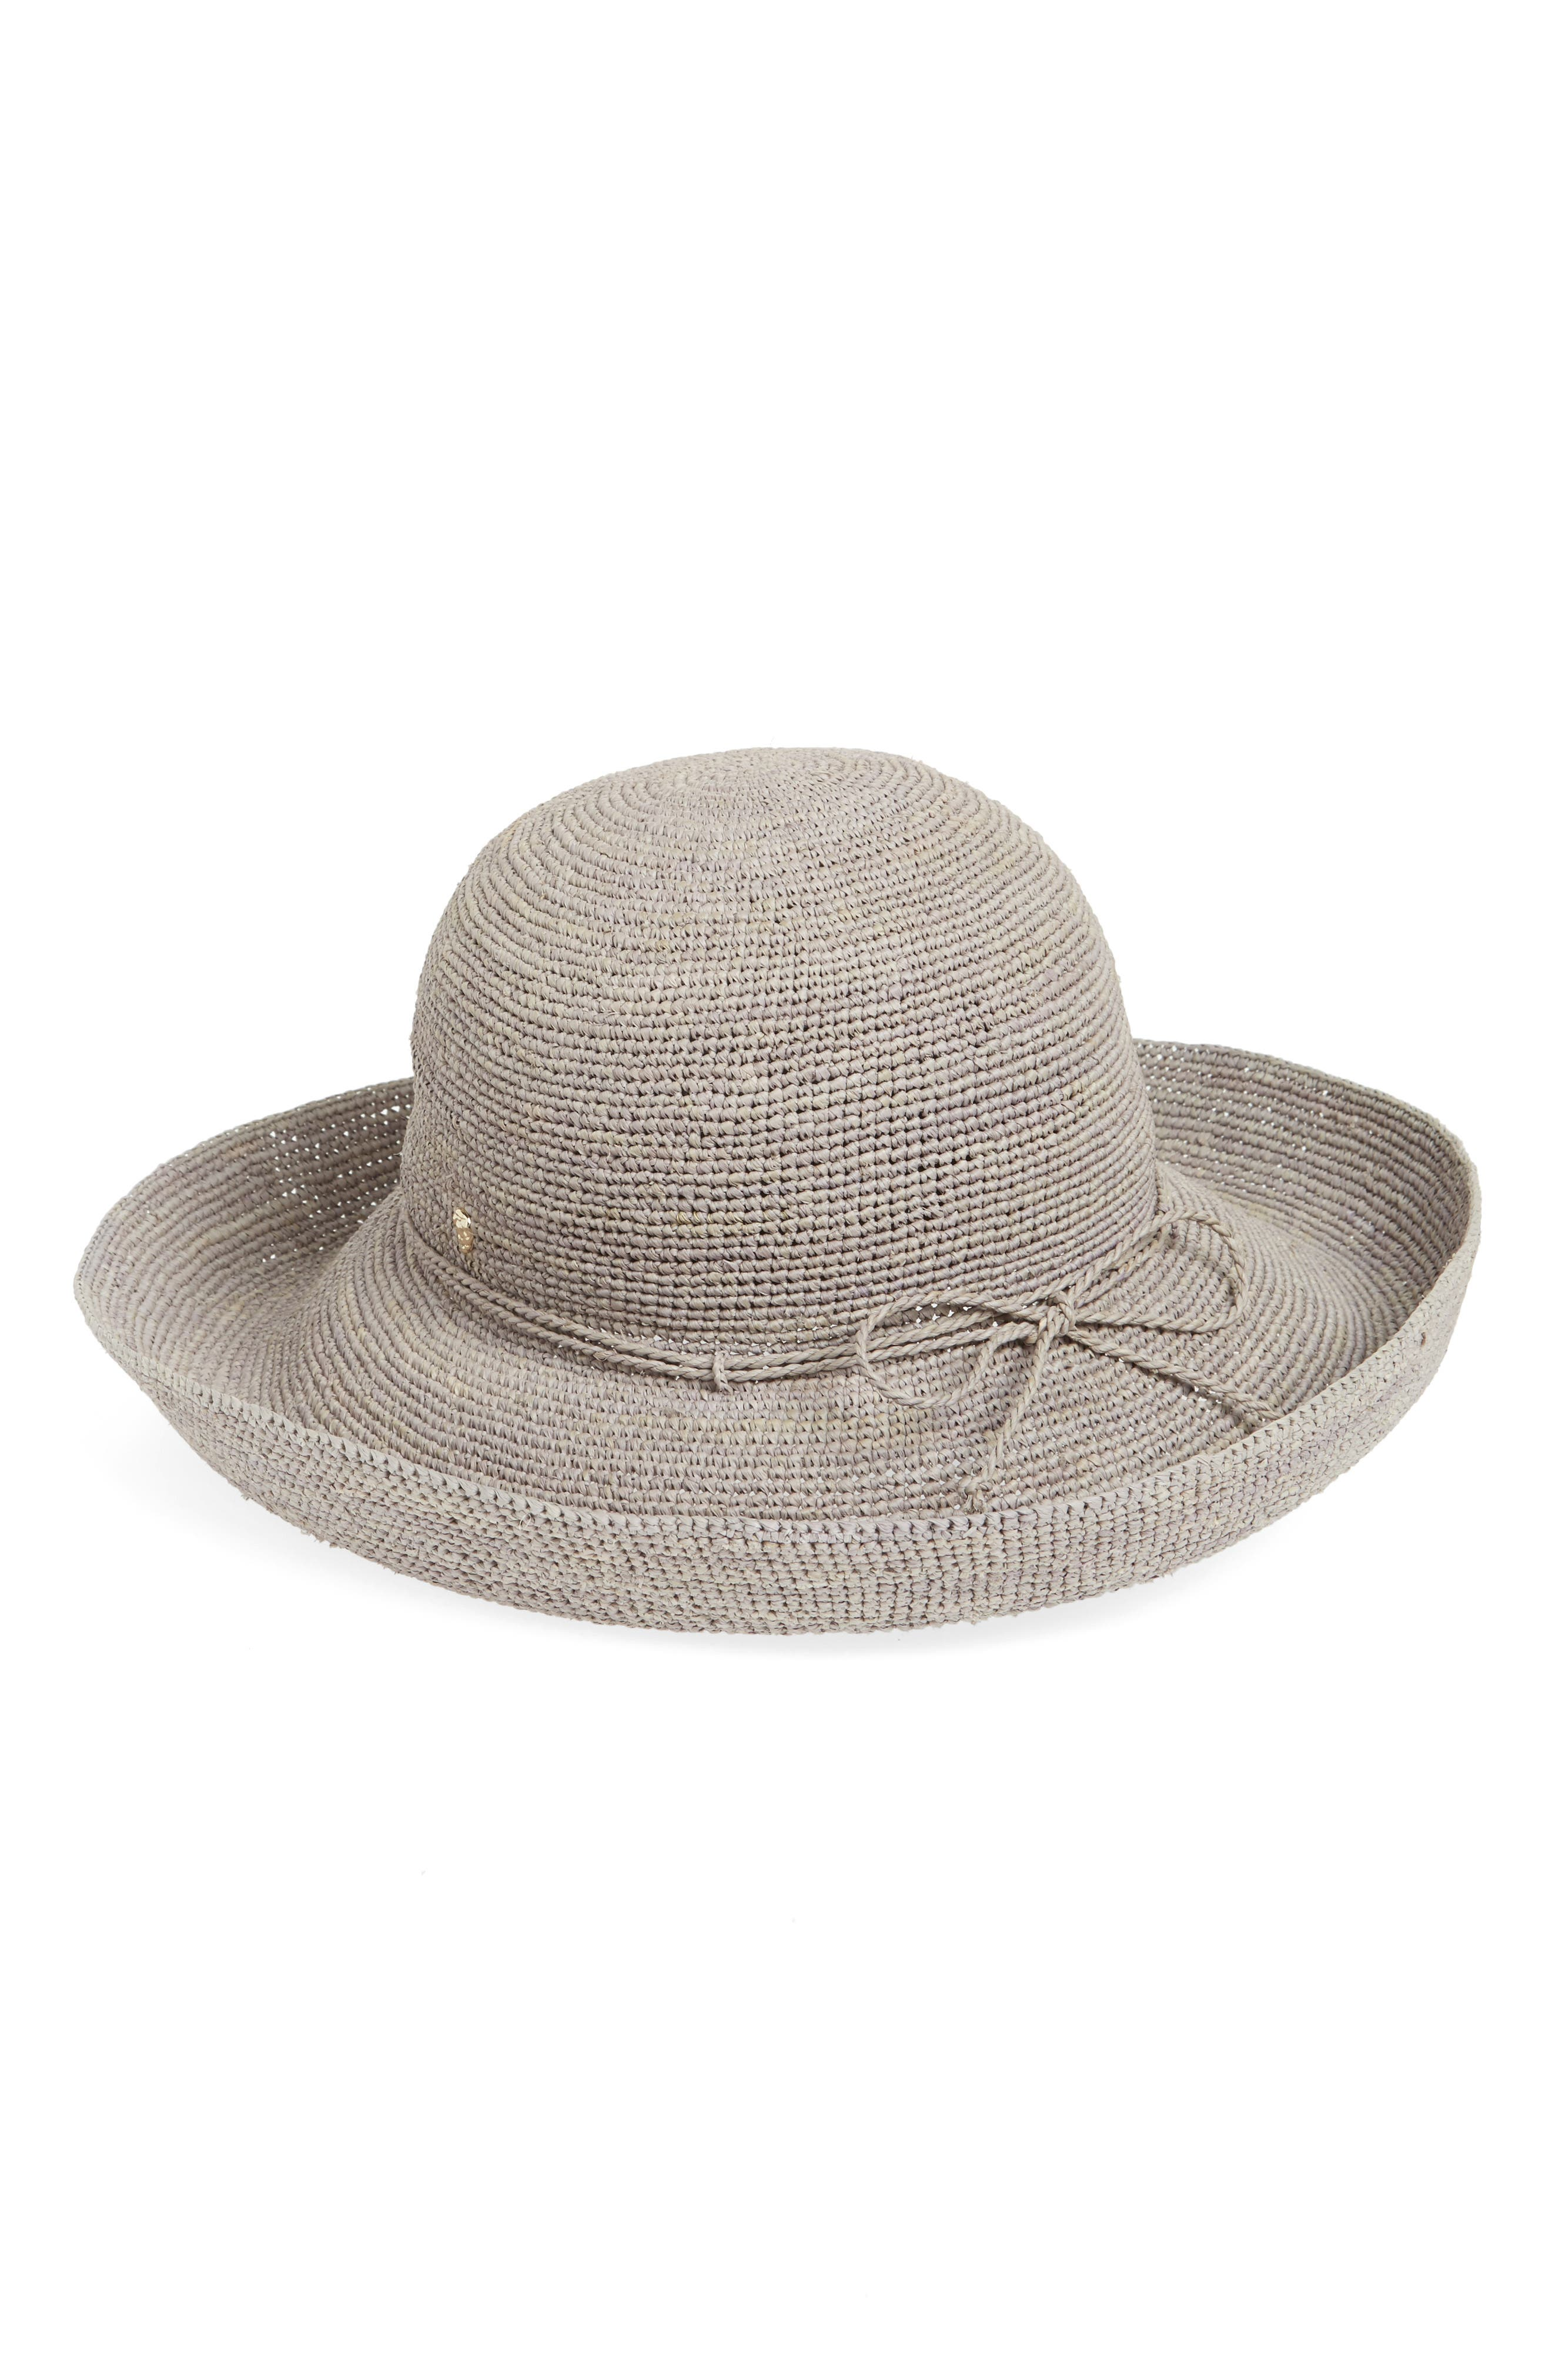 'Provence 12' Packable Raffia Hat,                             Main thumbnail 1, color,                             025